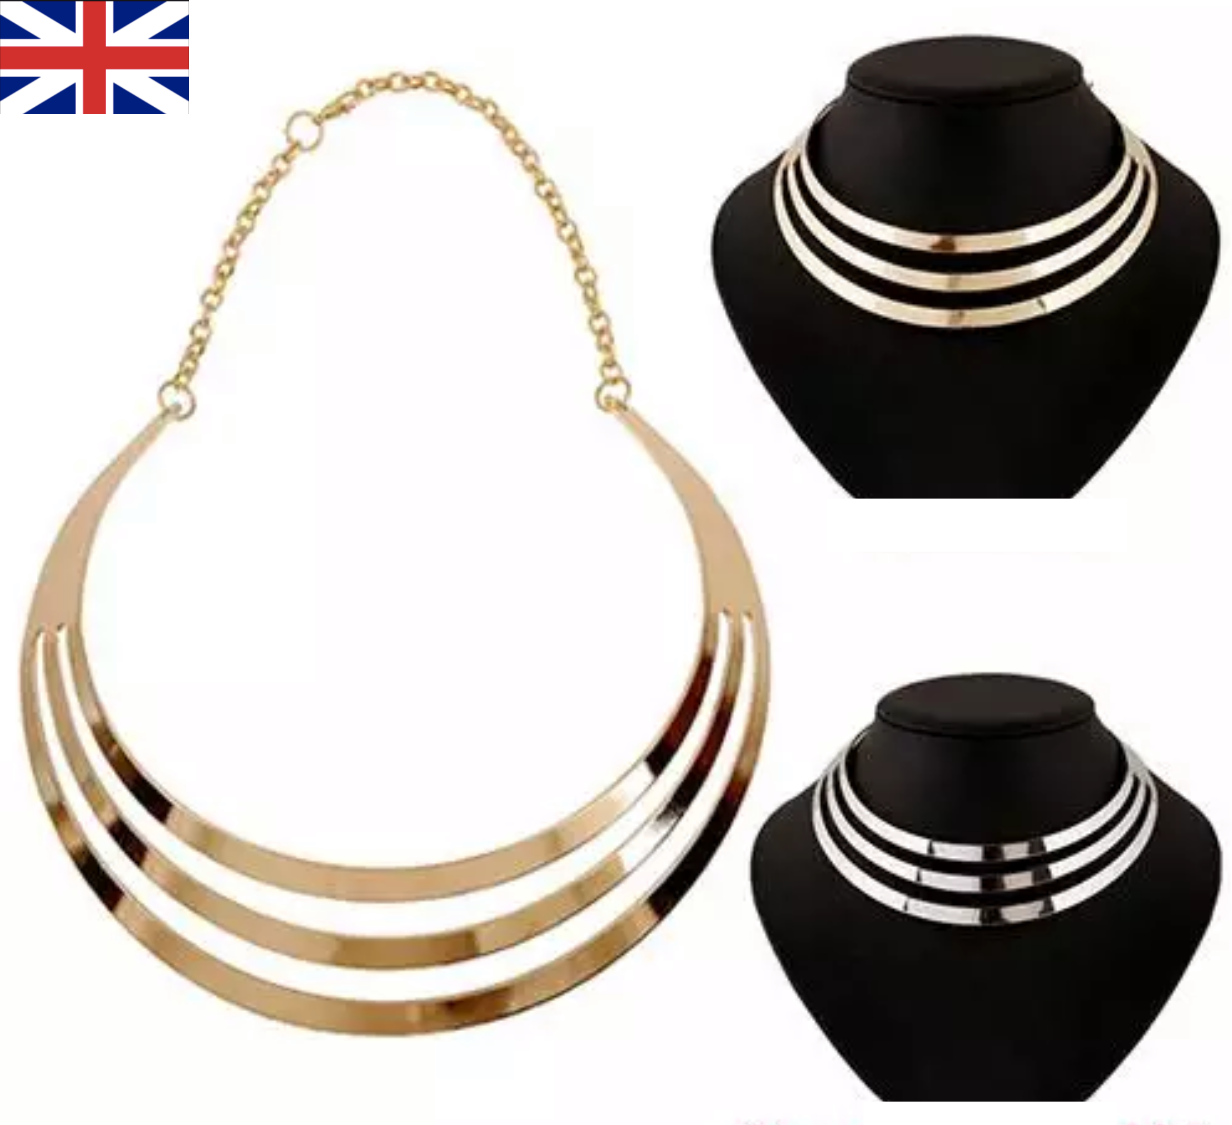 Jewellery - Fashion Jewellery GOLD SILVER Chain Choker Chunky Statement Bib Collar Necklace